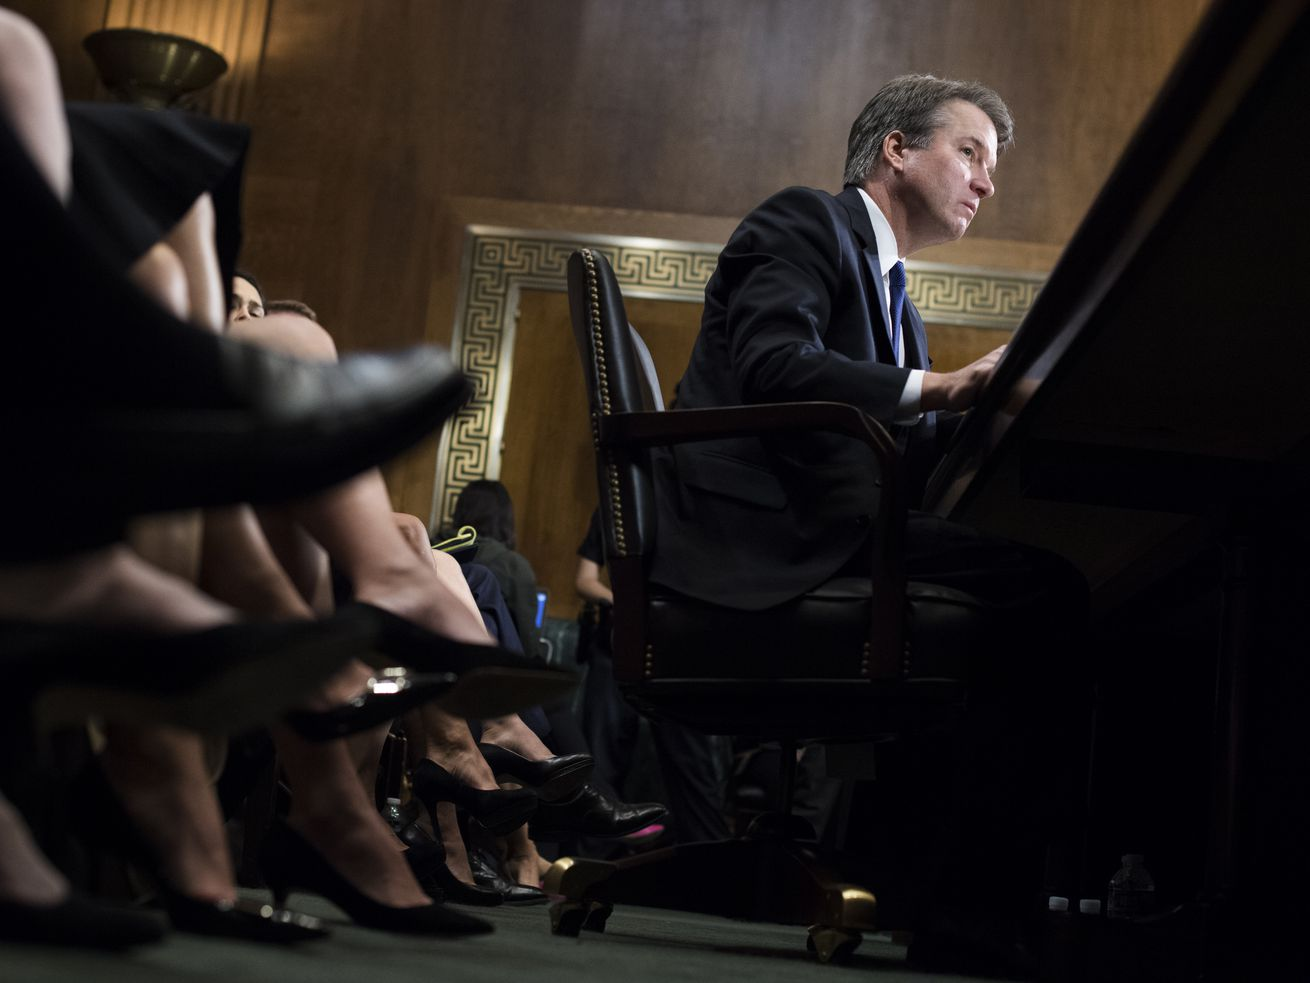 Judge Brett Kavanaugh testifies during the Senate Judiciary Committee hearing on his nomination be an associate justice of the Supreme Court of the United States, focusing on allegations of sexual assault from Christine Blasey Ford in the early 1980s.